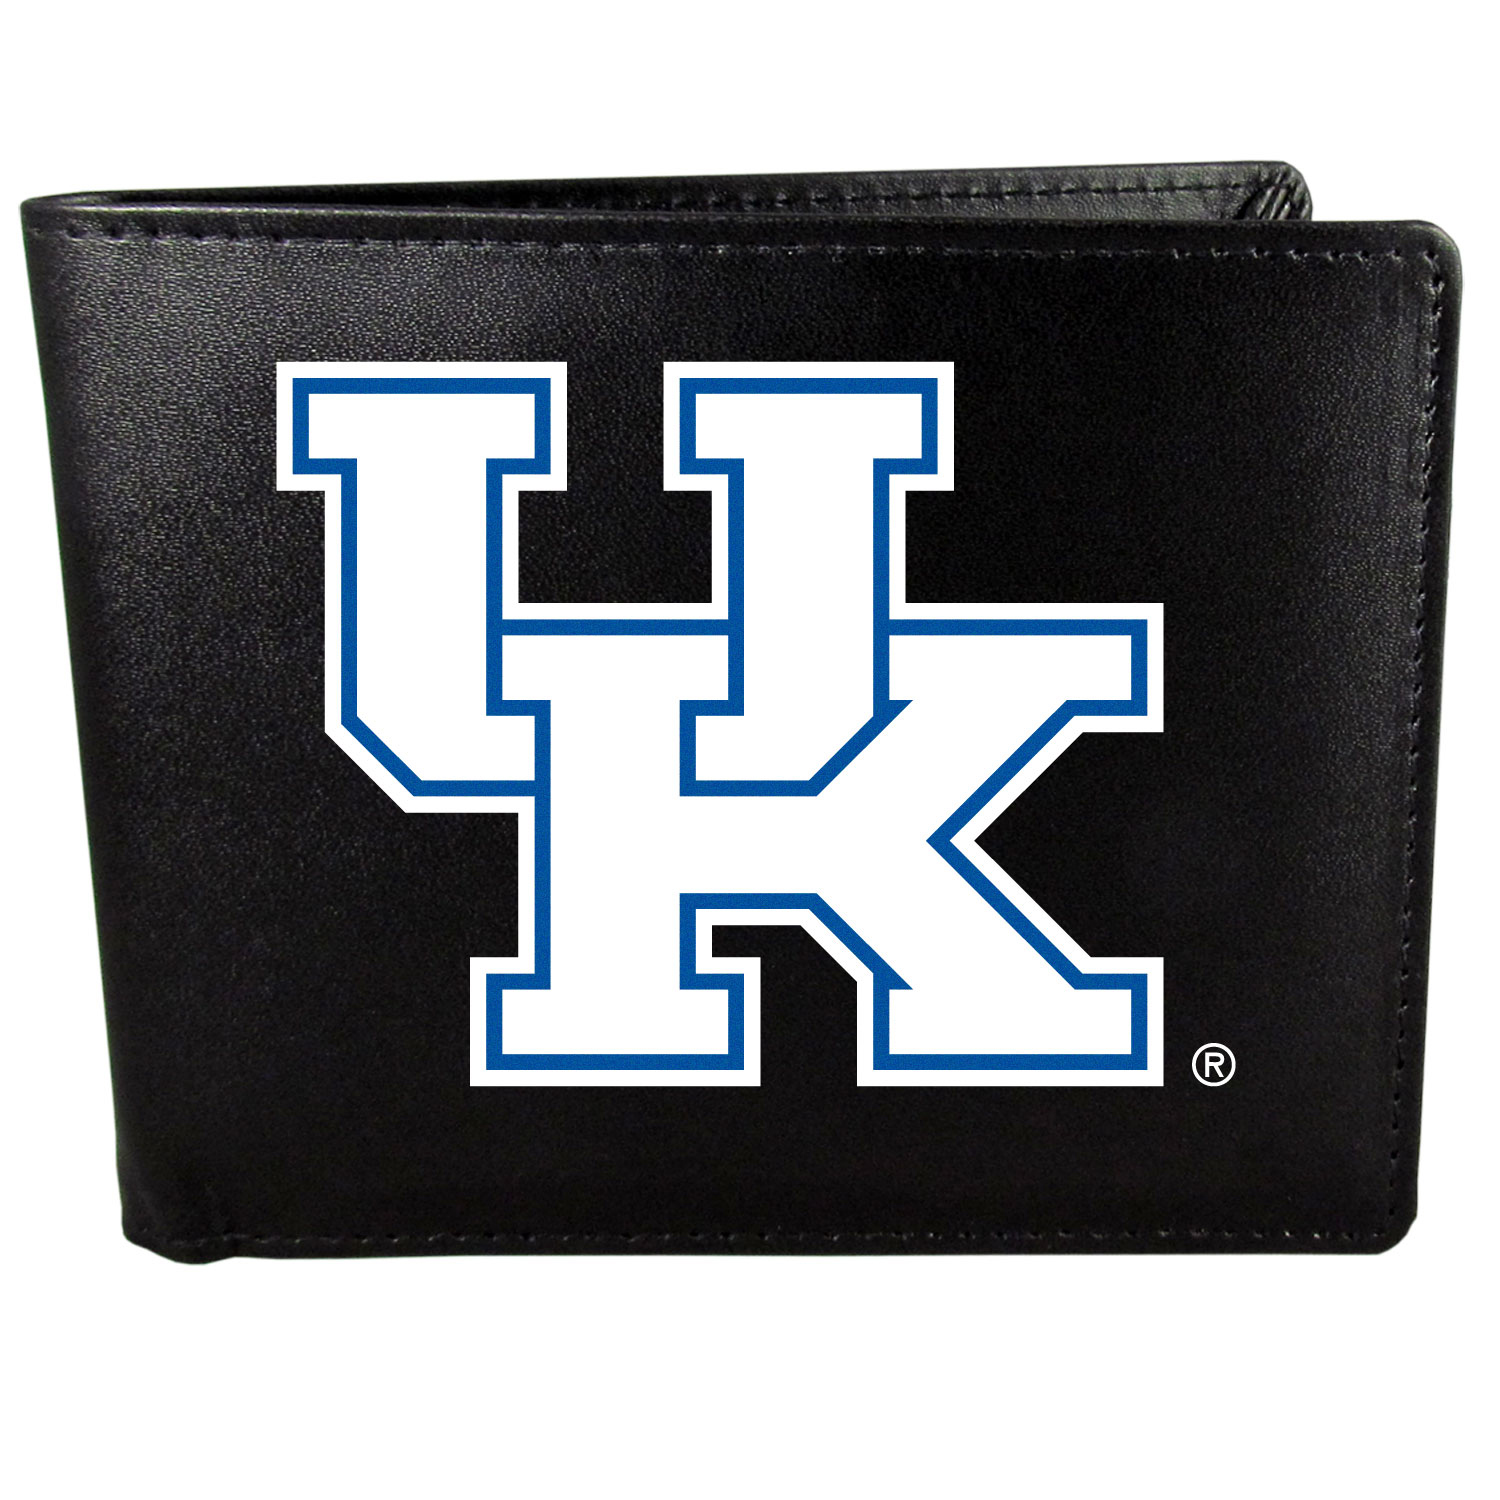 Kentucky Wildcats Leather Bi-fold Wallet, Large Logo - Our classic fine leather bi-fold wallet is meticulously crafted with genuine leather that will age beautifully so you will have a quality wallet for years to come. The wallet opens to a large, billfold pocket and numerous credit card slots and has a convenient windowed ID slot. The front of the wallet features an extra large Kentucky Wildcats printed logo.